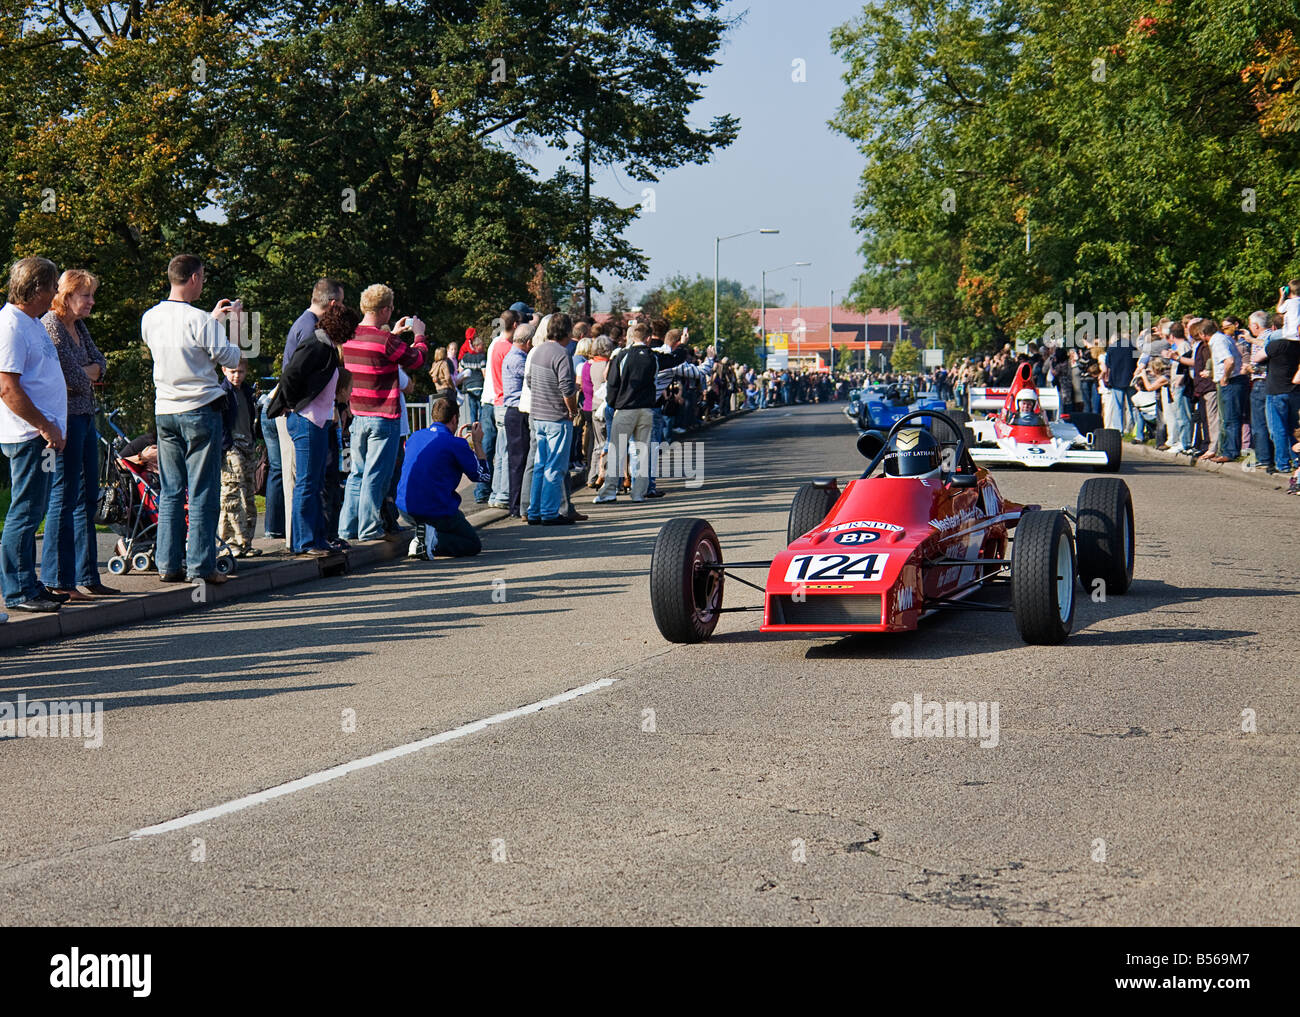 The Lola T640 Formula Ford 1600 during Lola\'s 50th Anniversary ...